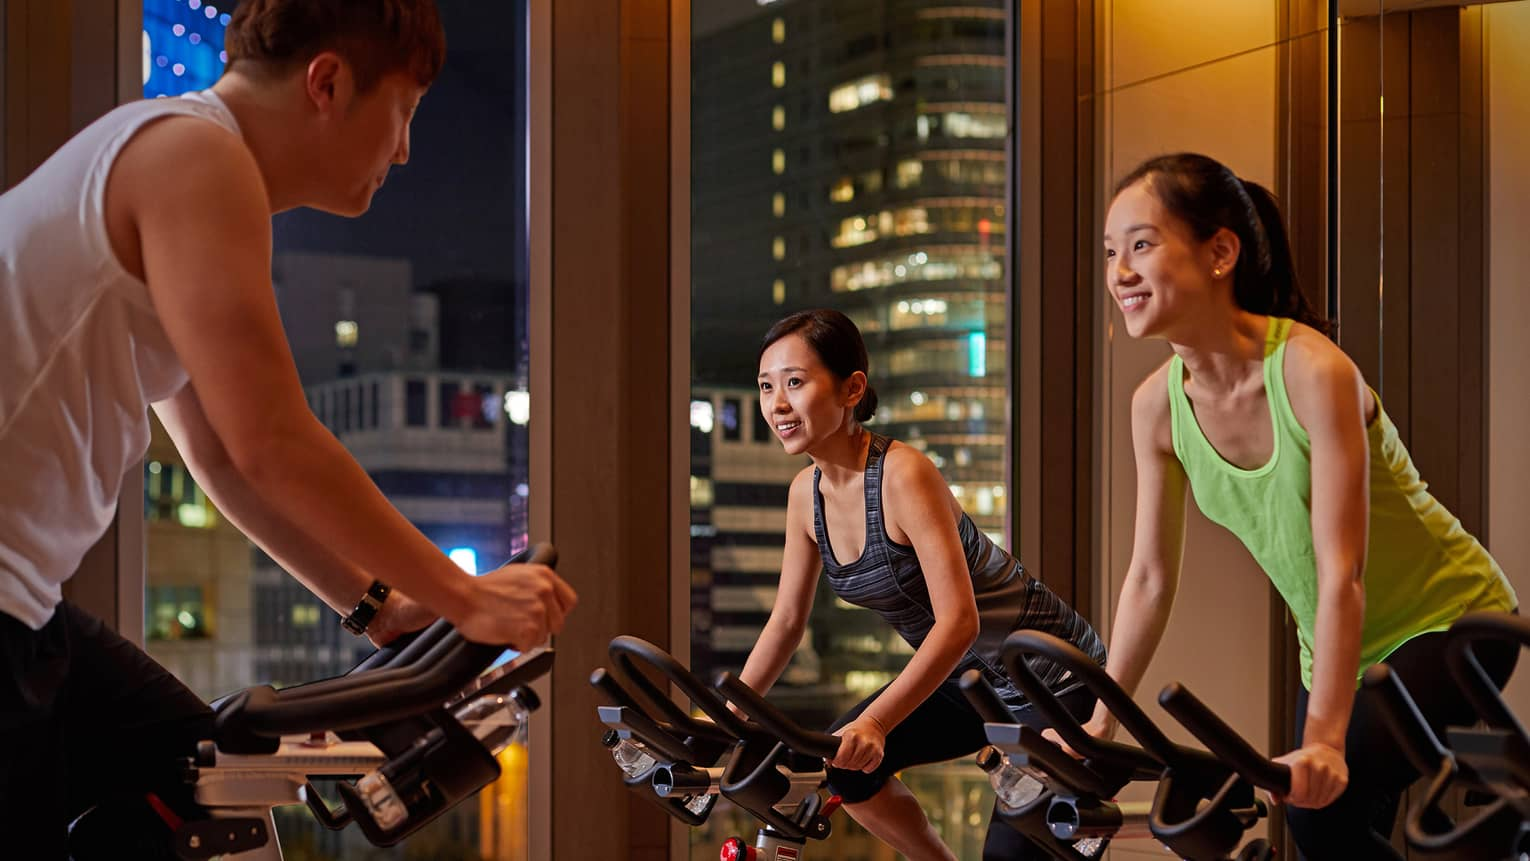 Man and two women on bikes in private spin class